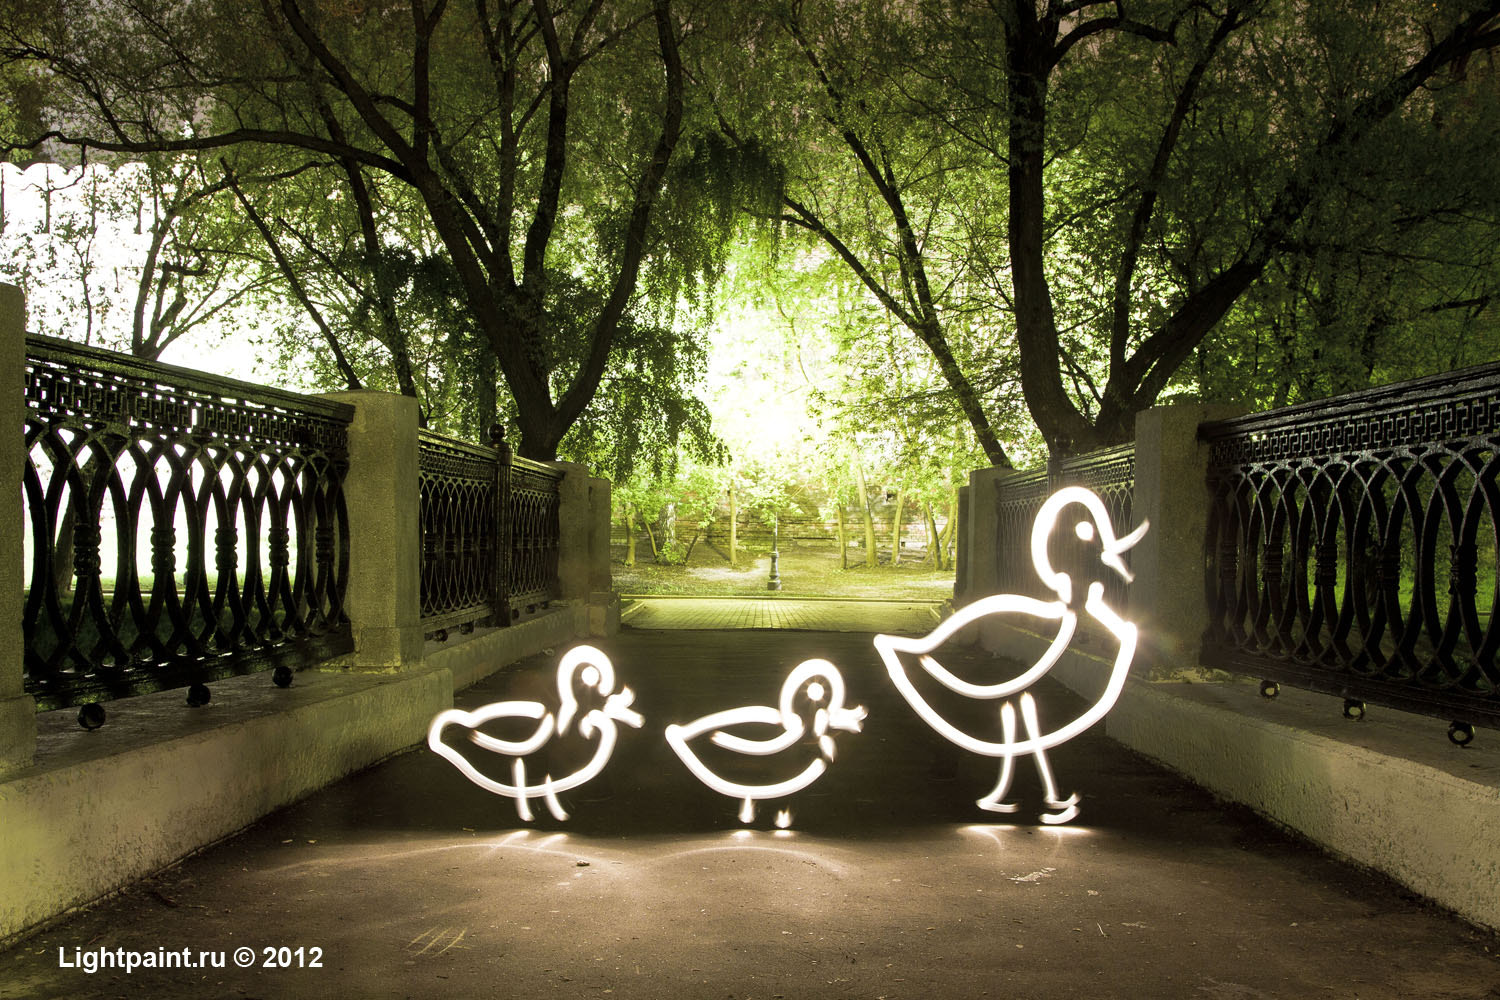 Photograph Light painting (фризлайт) - a family of ducks by Lightpaint.ru Moscow, Russia on 500px